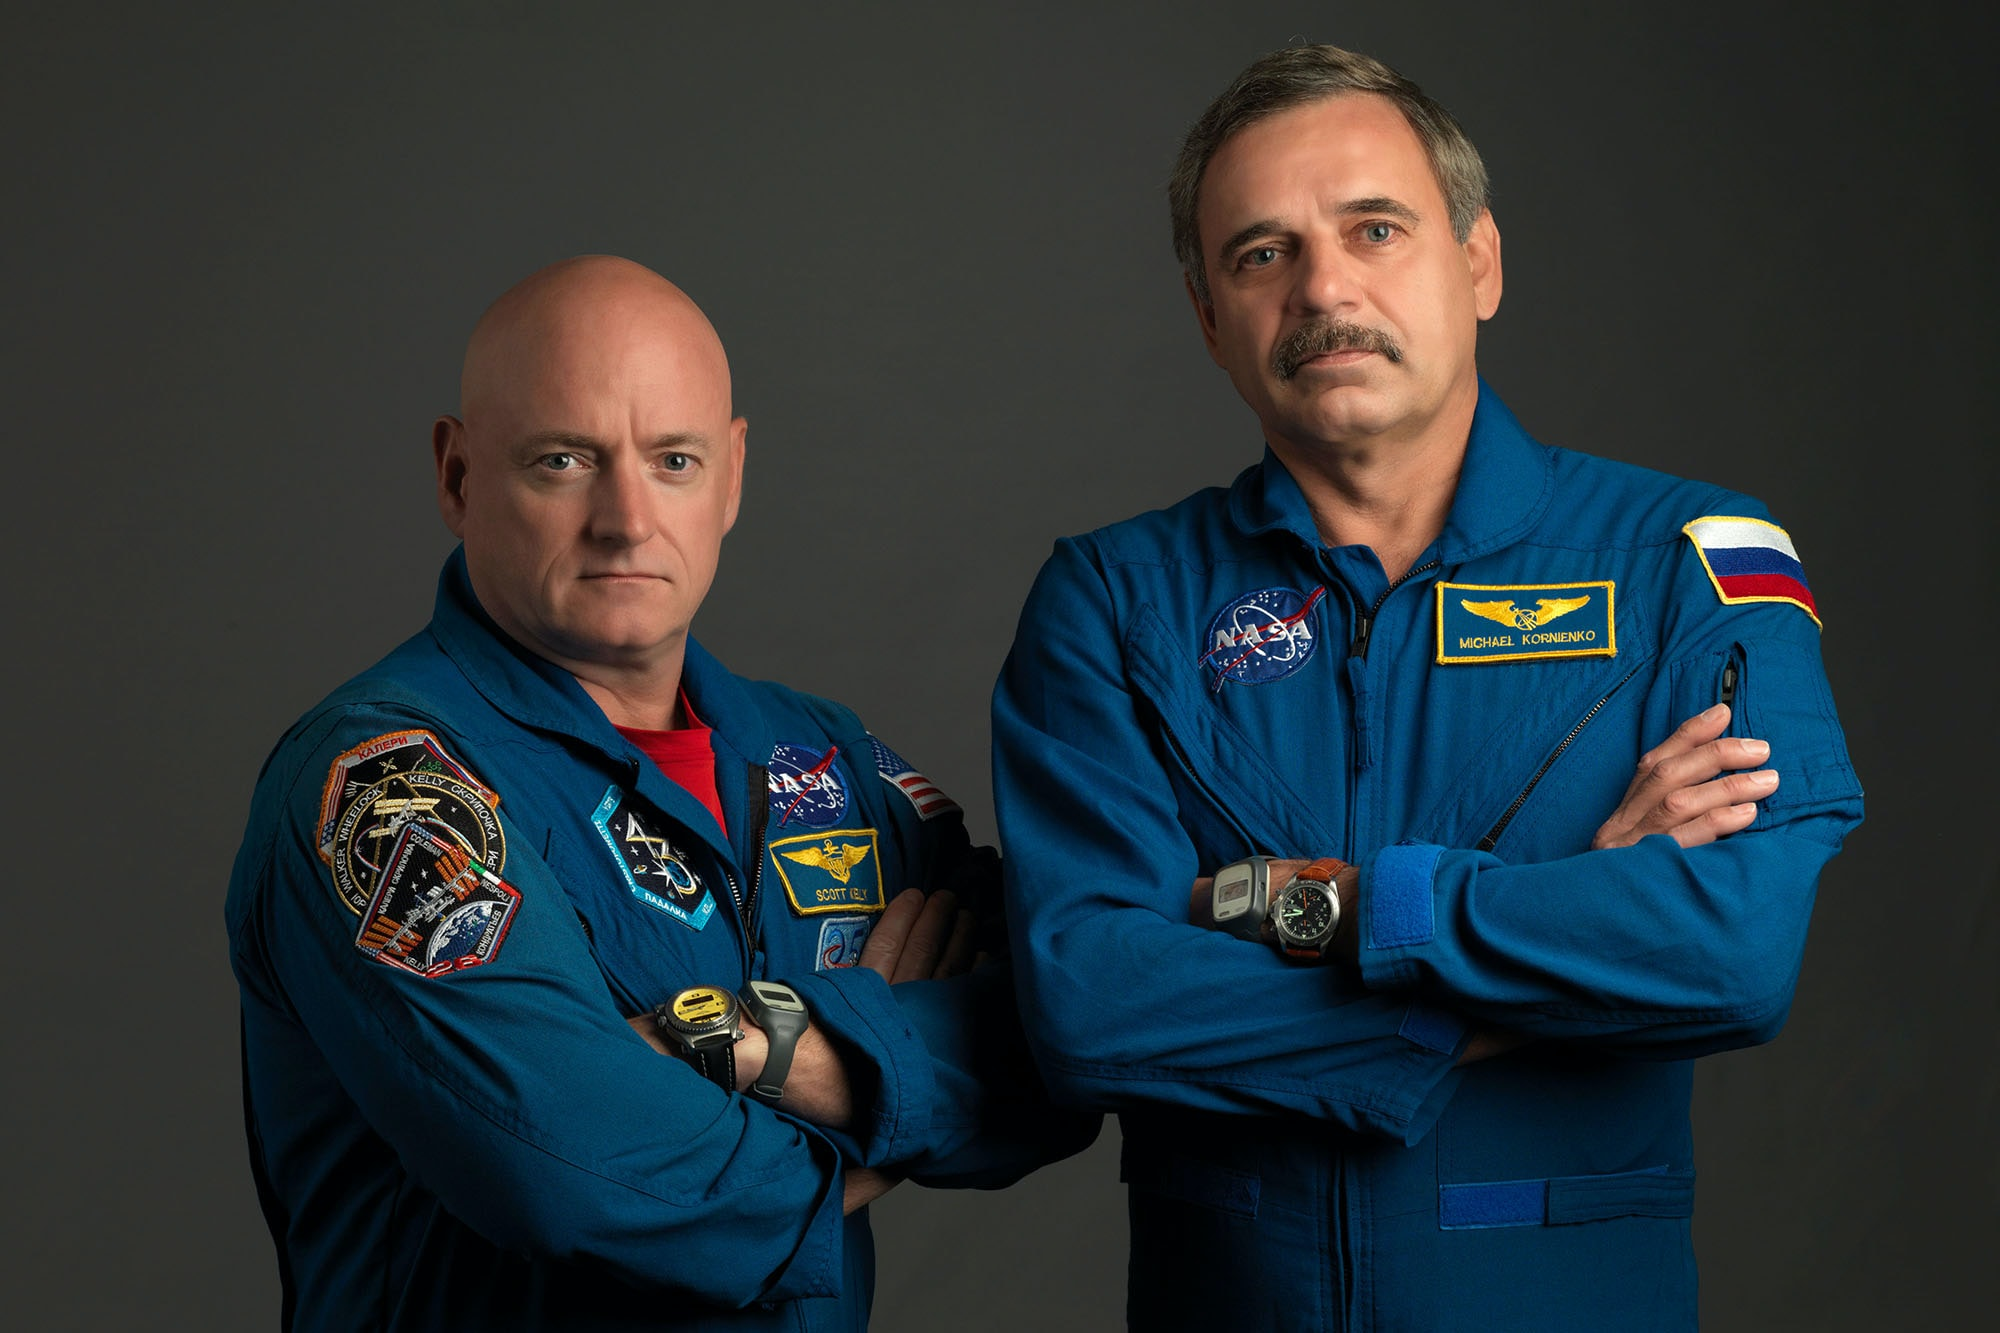 Kelly and Korniyenko with Speedmaster and Fortis Cosmonaut  The Watches Worn By NASA Astronaut Scott Kelly, Holder Of New U.S. Spaceflight Endurance Record The Watches Worn By NASA Astronaut Scott Kelly, Holder Of New U.S. Spaceflight Endurance Record 02 Scott Kelly and Mikhail Kornienko portrait   year long mission